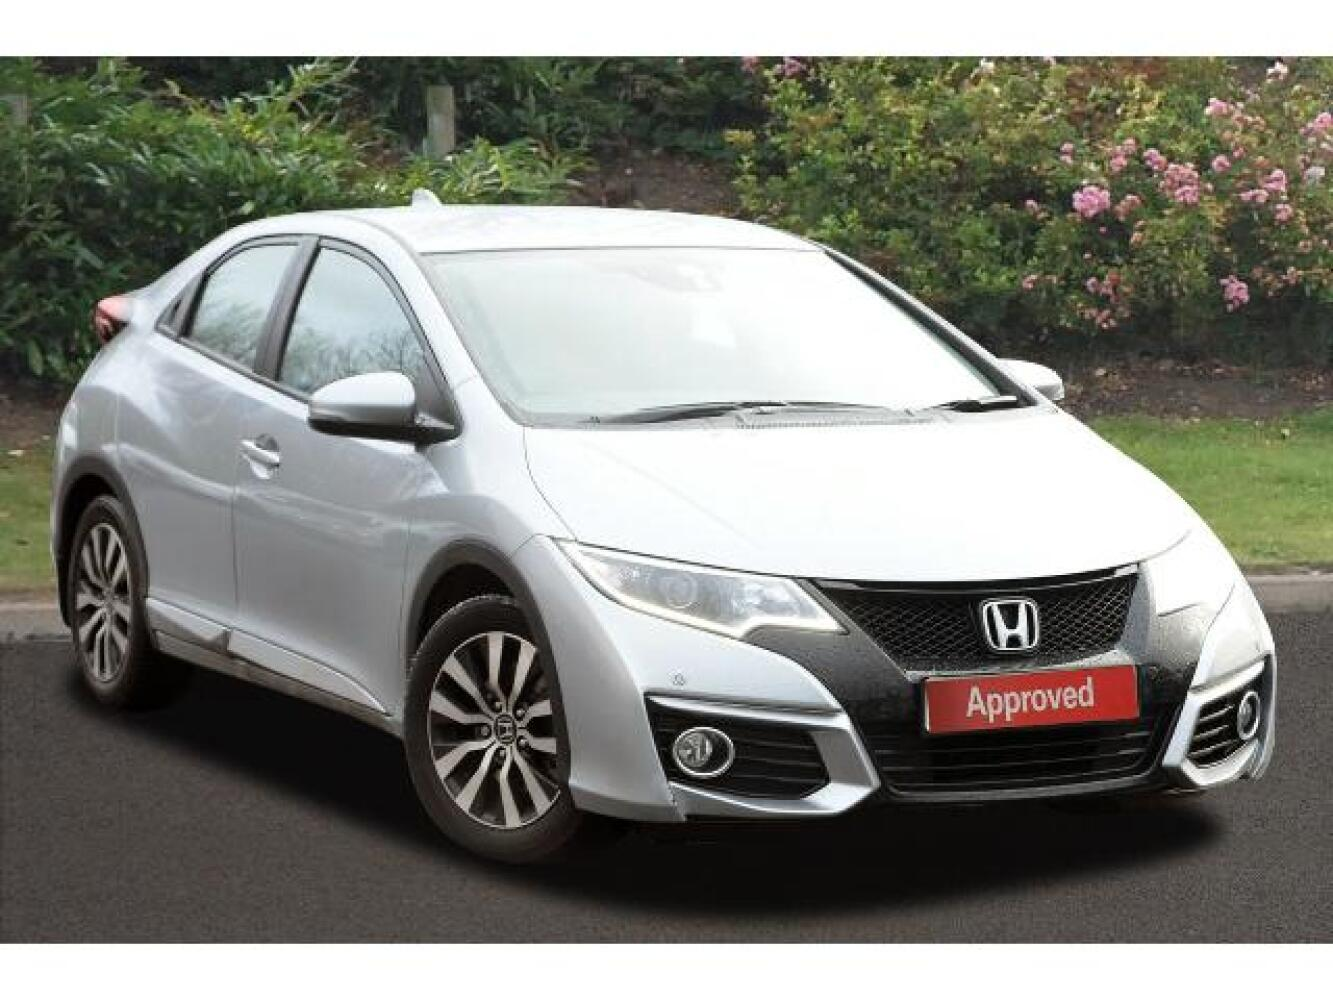 used honda civic 1 6 i dtec se plus 5dr nav diesel hatchback for sale vertu honda. Black Bedroom Furniture Sets. Home Design Ideas